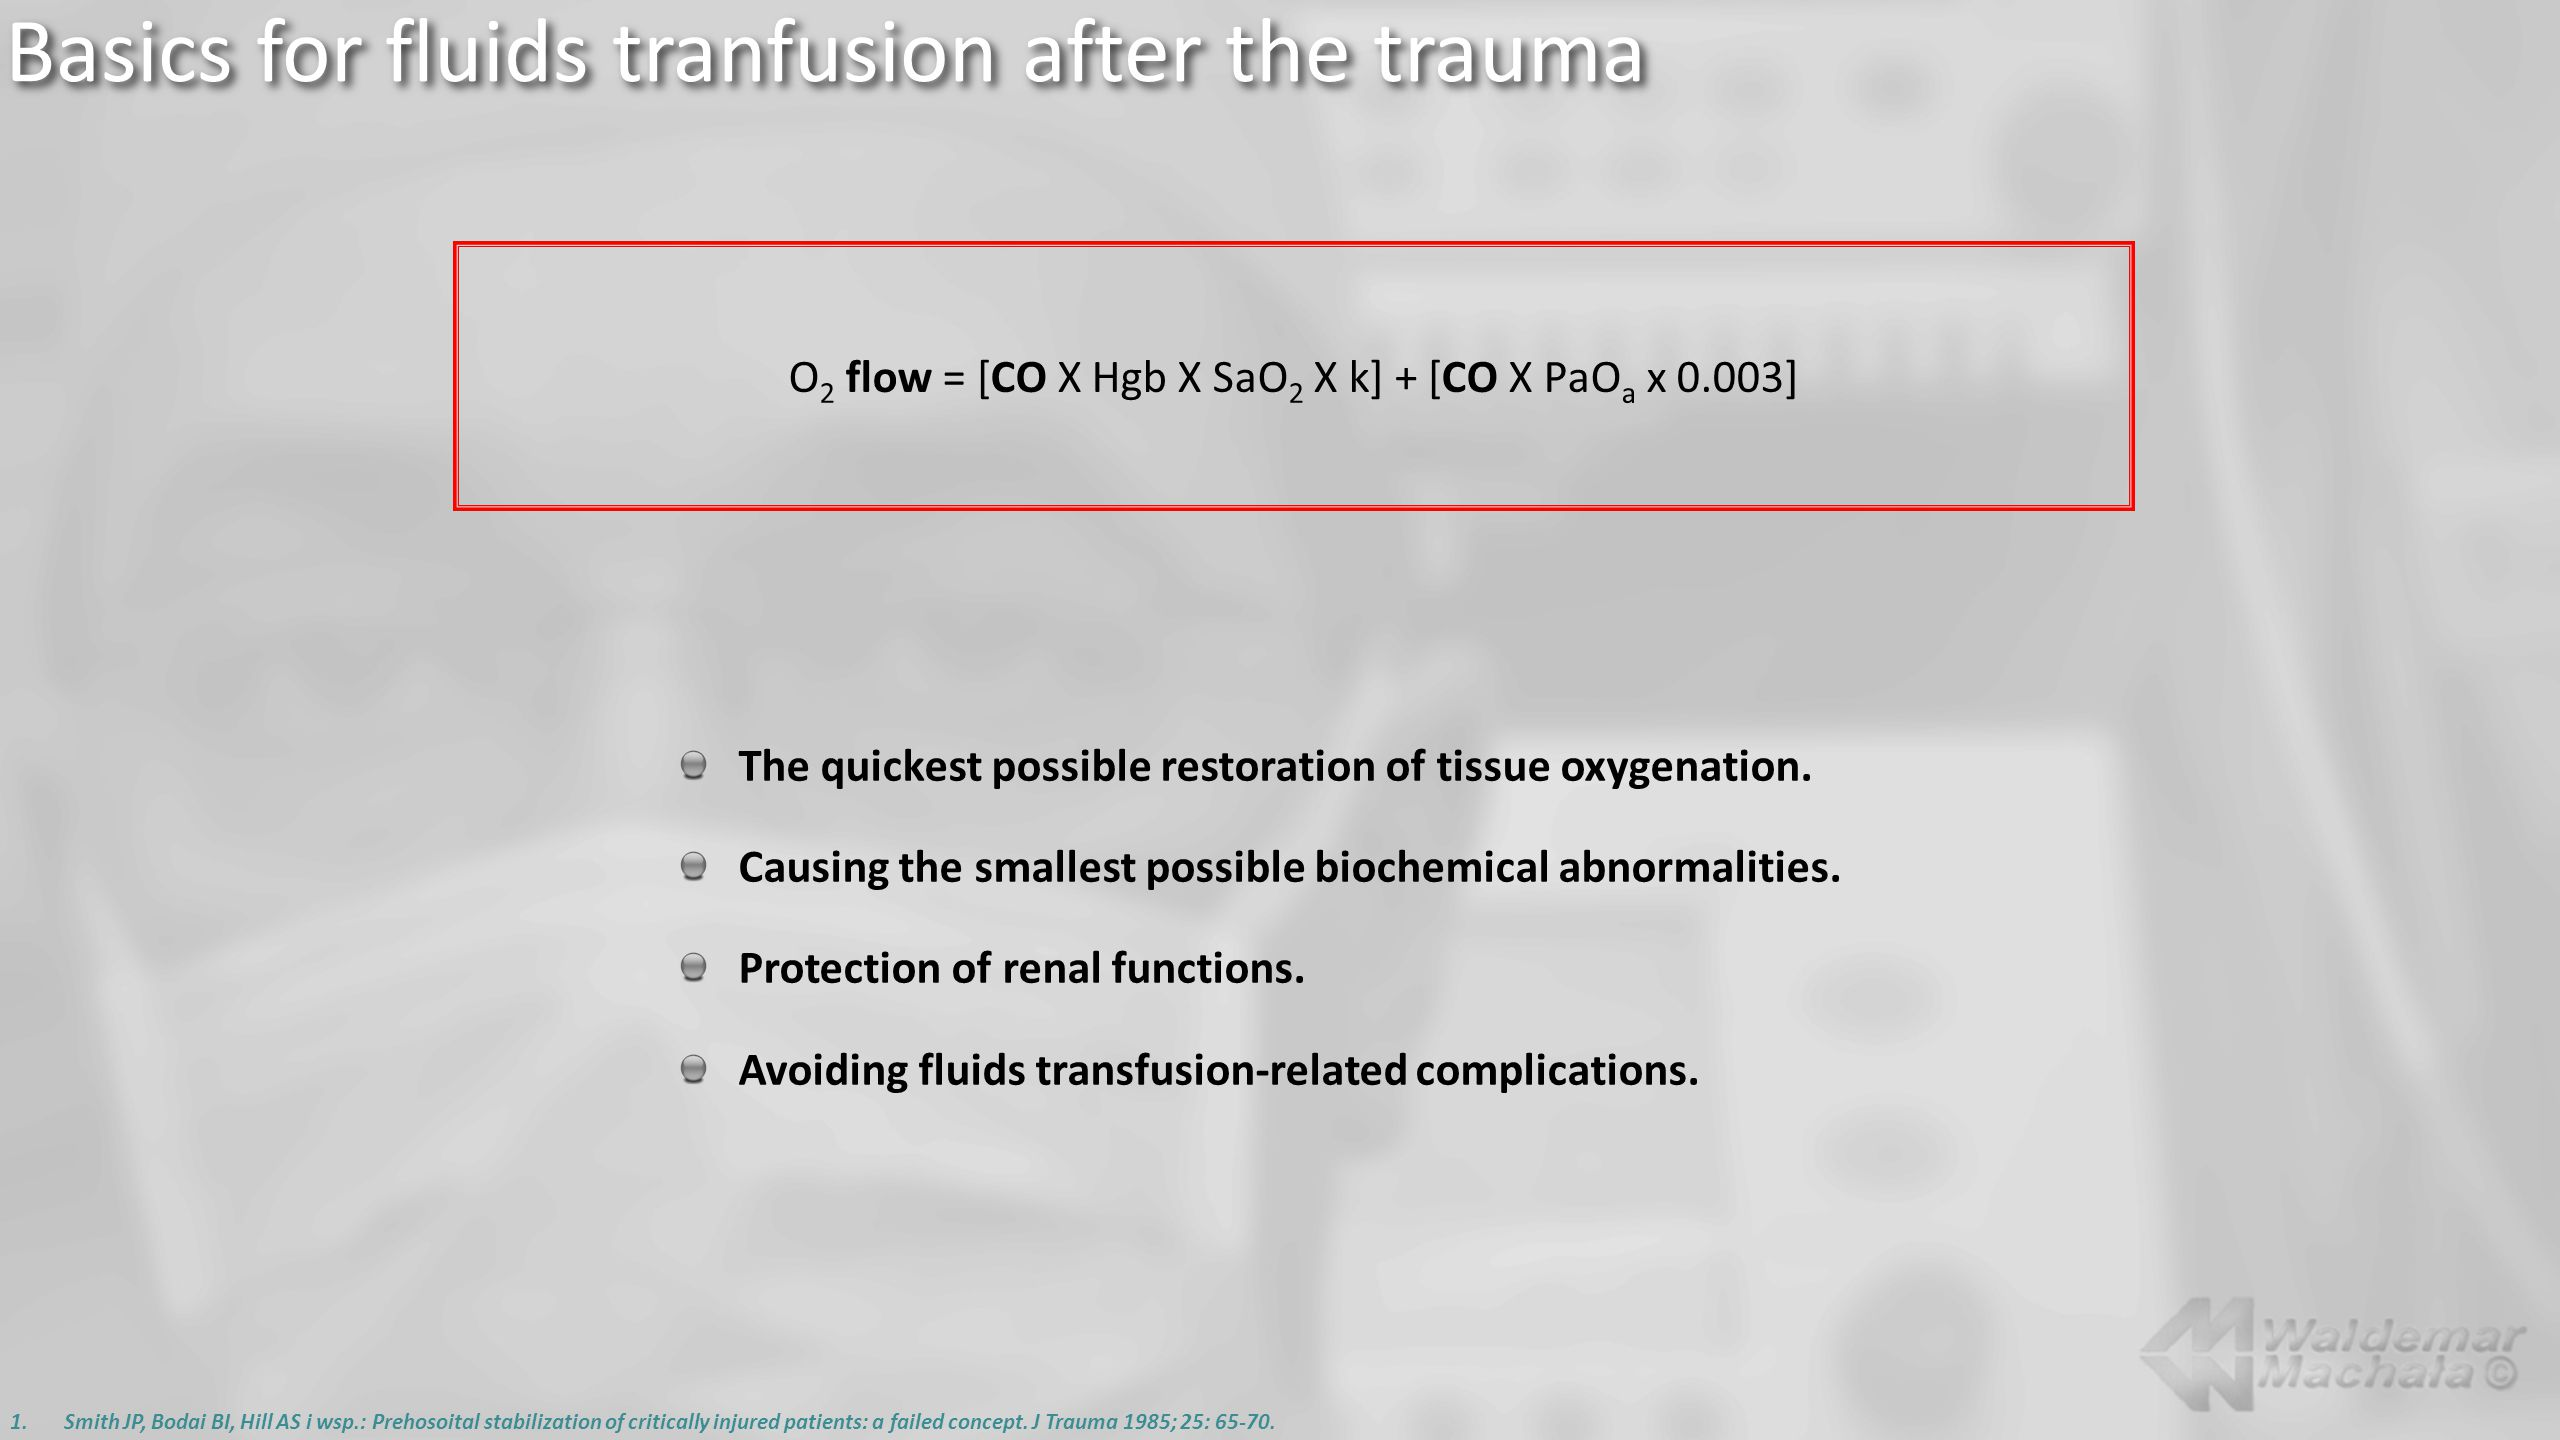 Basics for fluids tranfusion after the trauma 1.Smith JP, Bodai BI, Hill AS i wsp.: Prehosoital stabilization of critically injured patients: a failed concept.